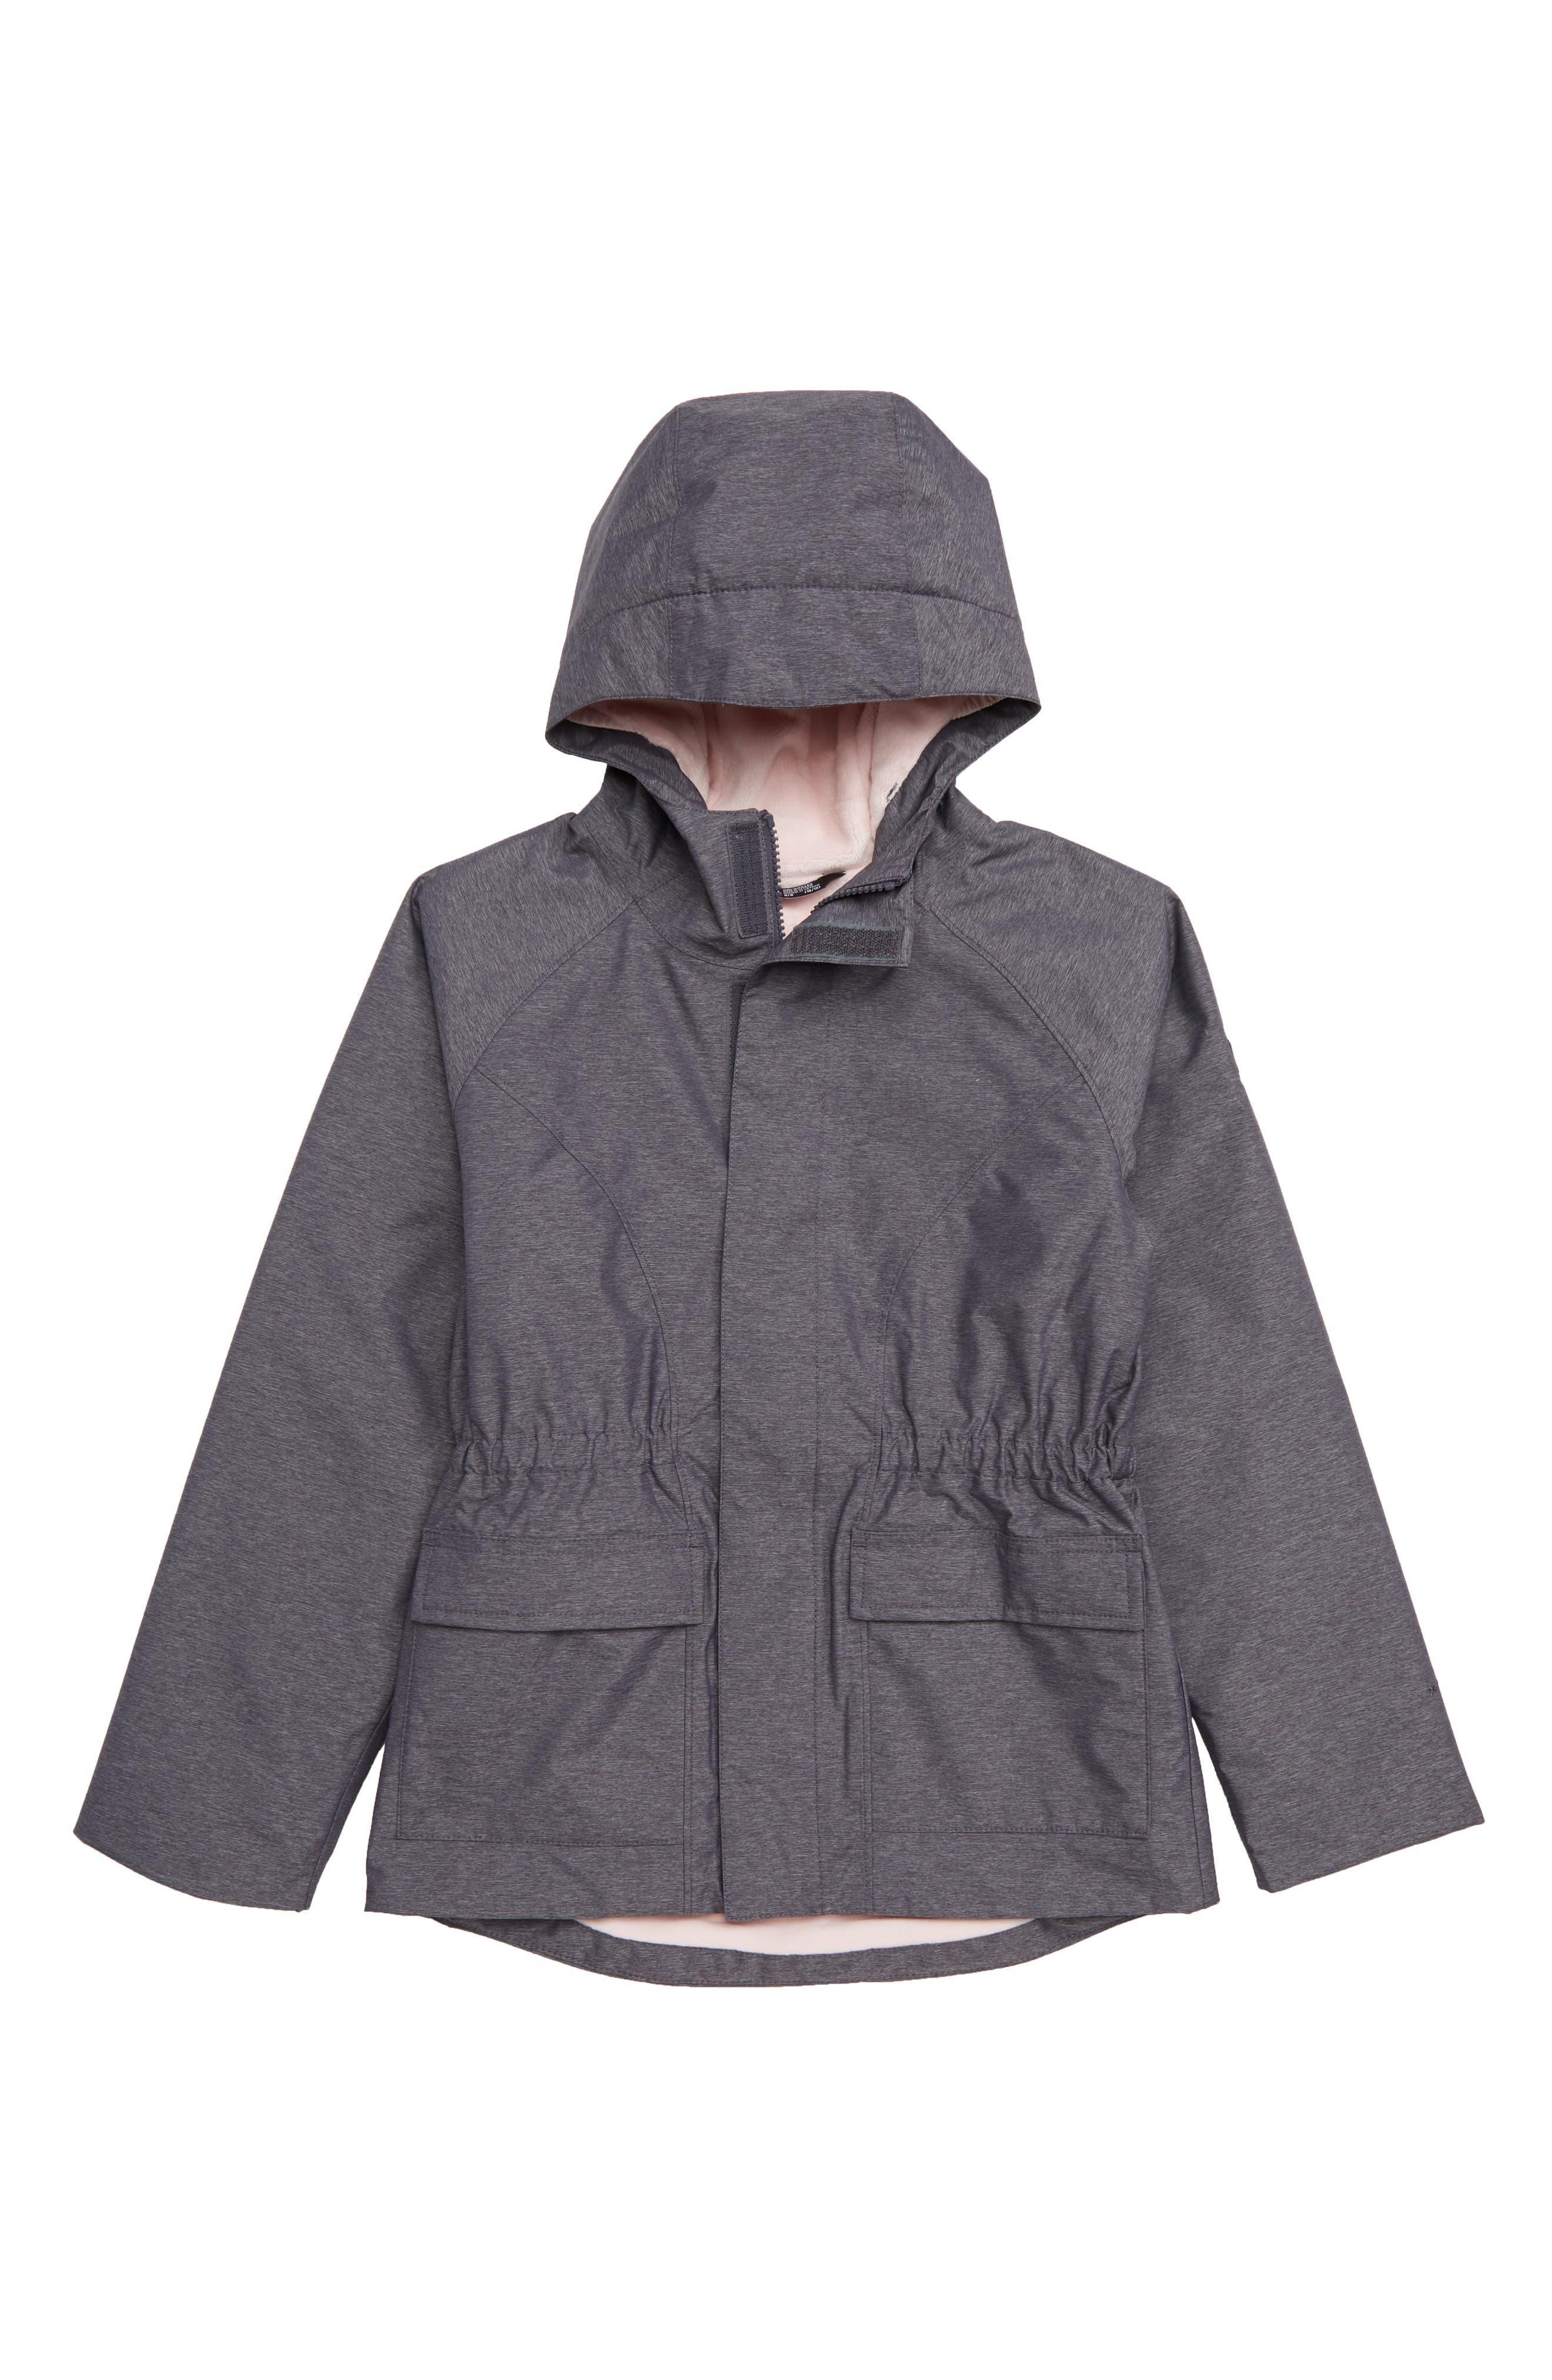 Warm Sophie Hooded Rain Parka,                         Main,                         color, PERISCOPE GREY HEATHER